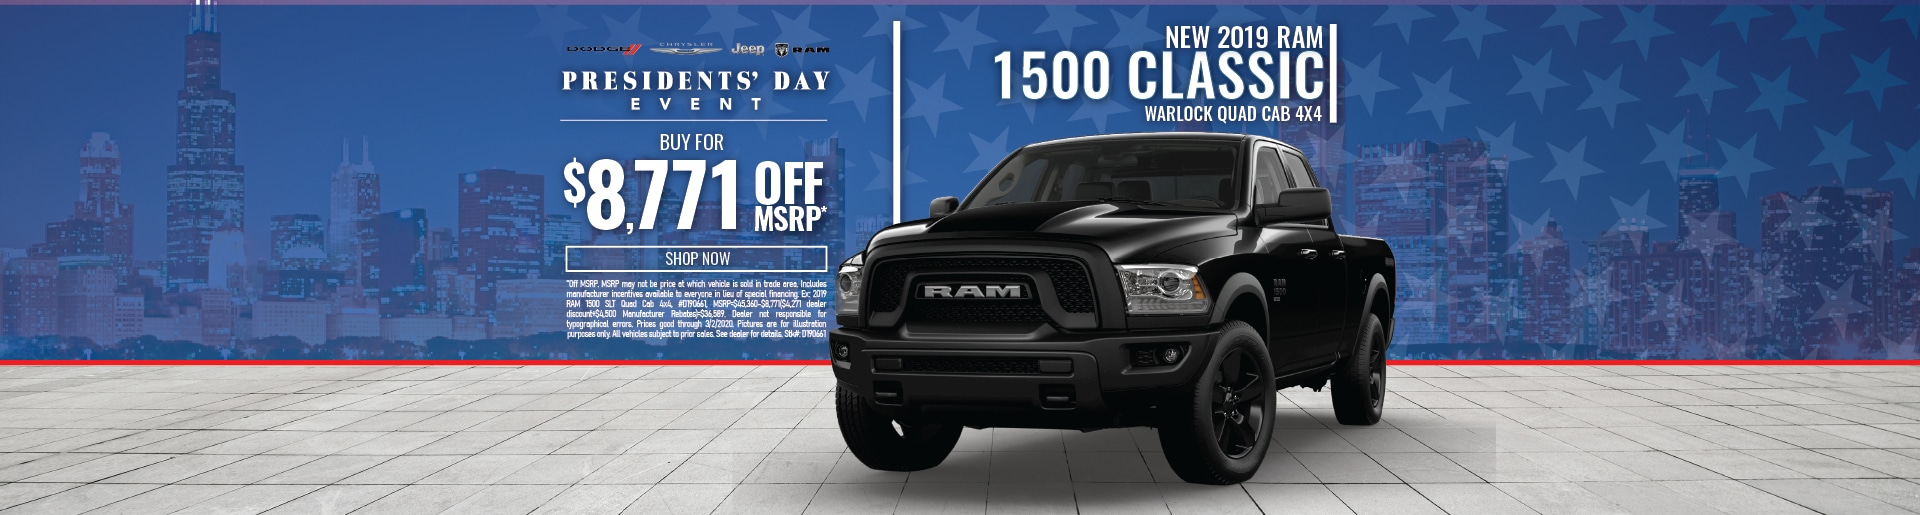 RAM 1500 Pickup Truck Special Discount Deal